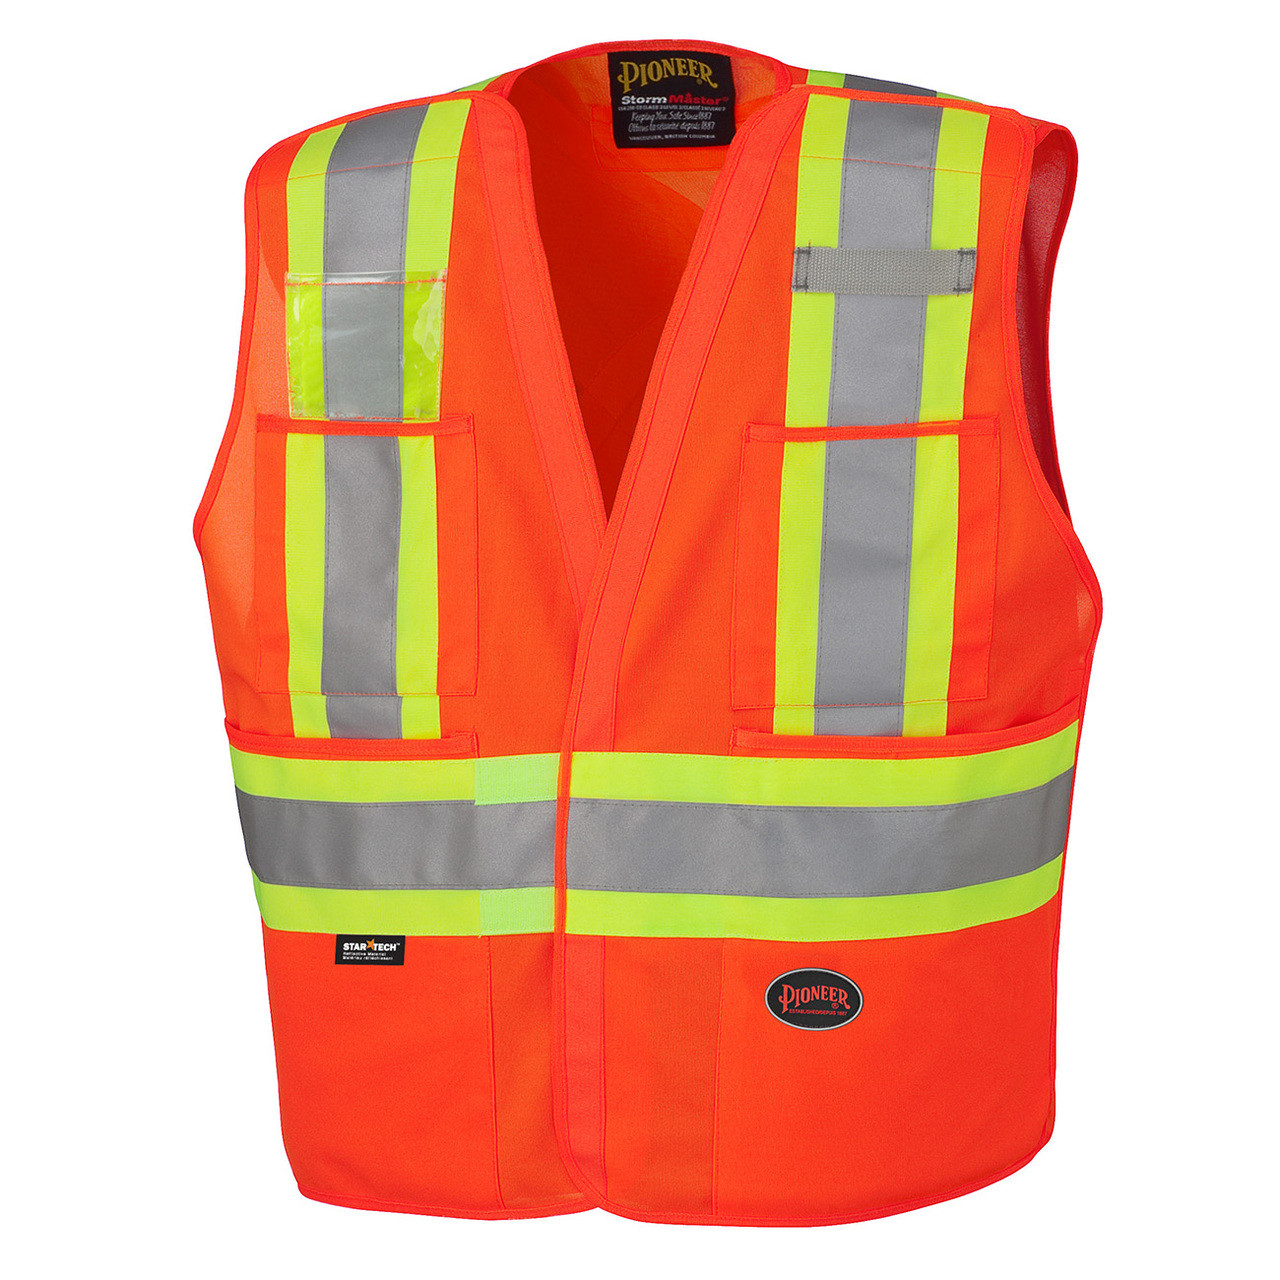 Orange Hi-Viz Safety Tear-away Vest